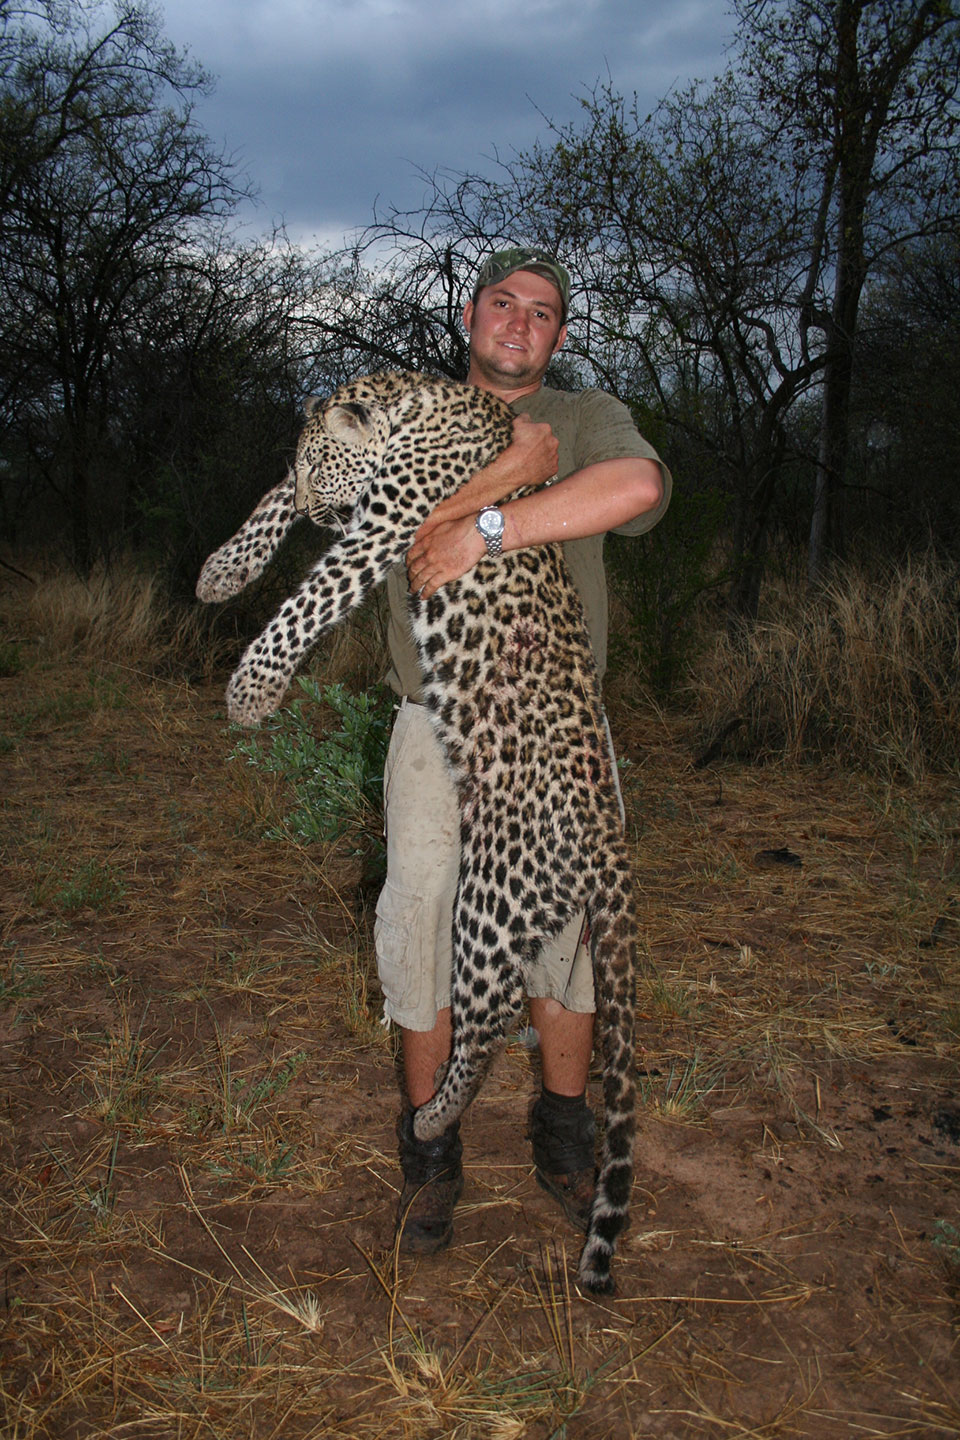 leopard-hunting-outfitters-in-Namibia-Africa.jpg